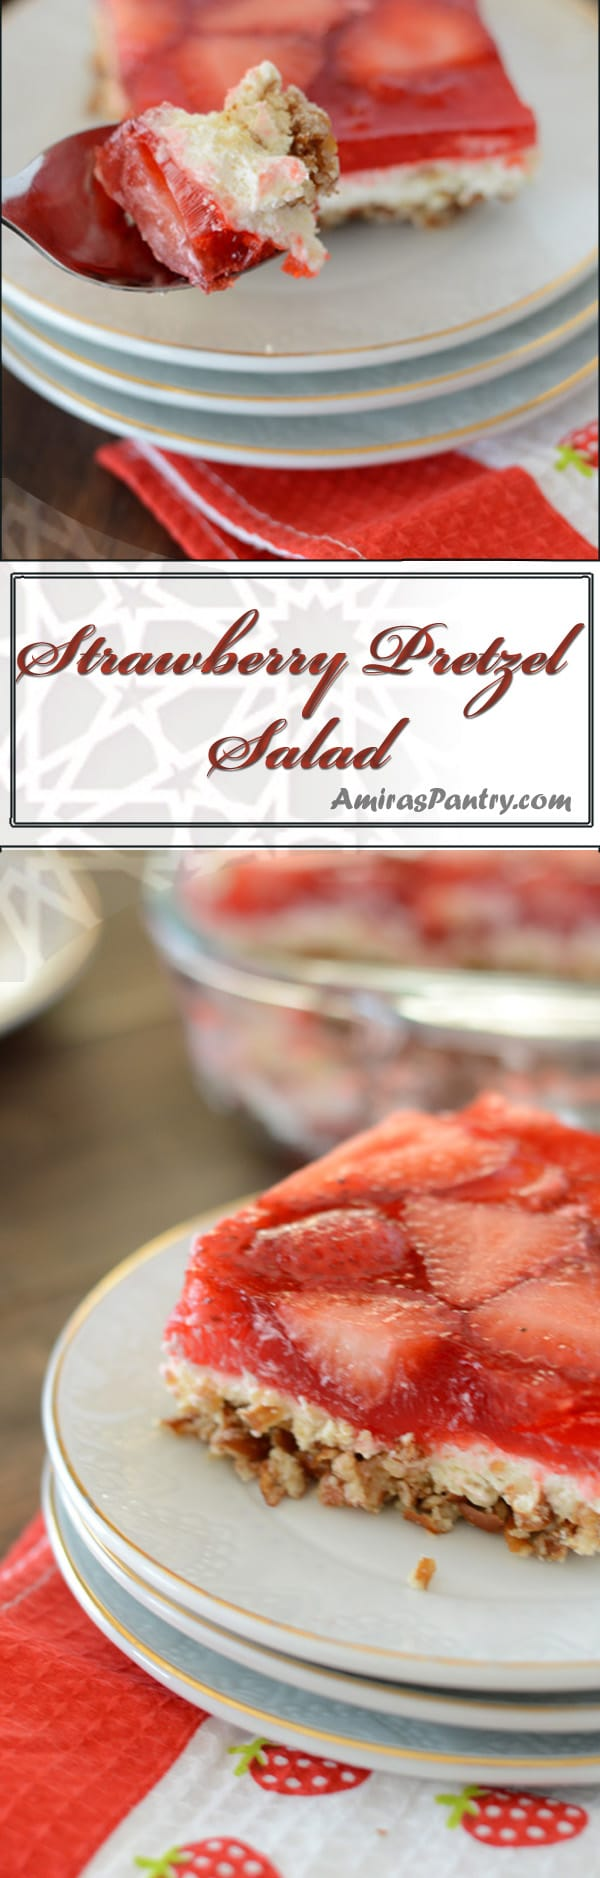 Strawberry pretzel salad is a jello pretzel cream cheese dessert topped with strawberries. The perfect sweet and salty dessert.